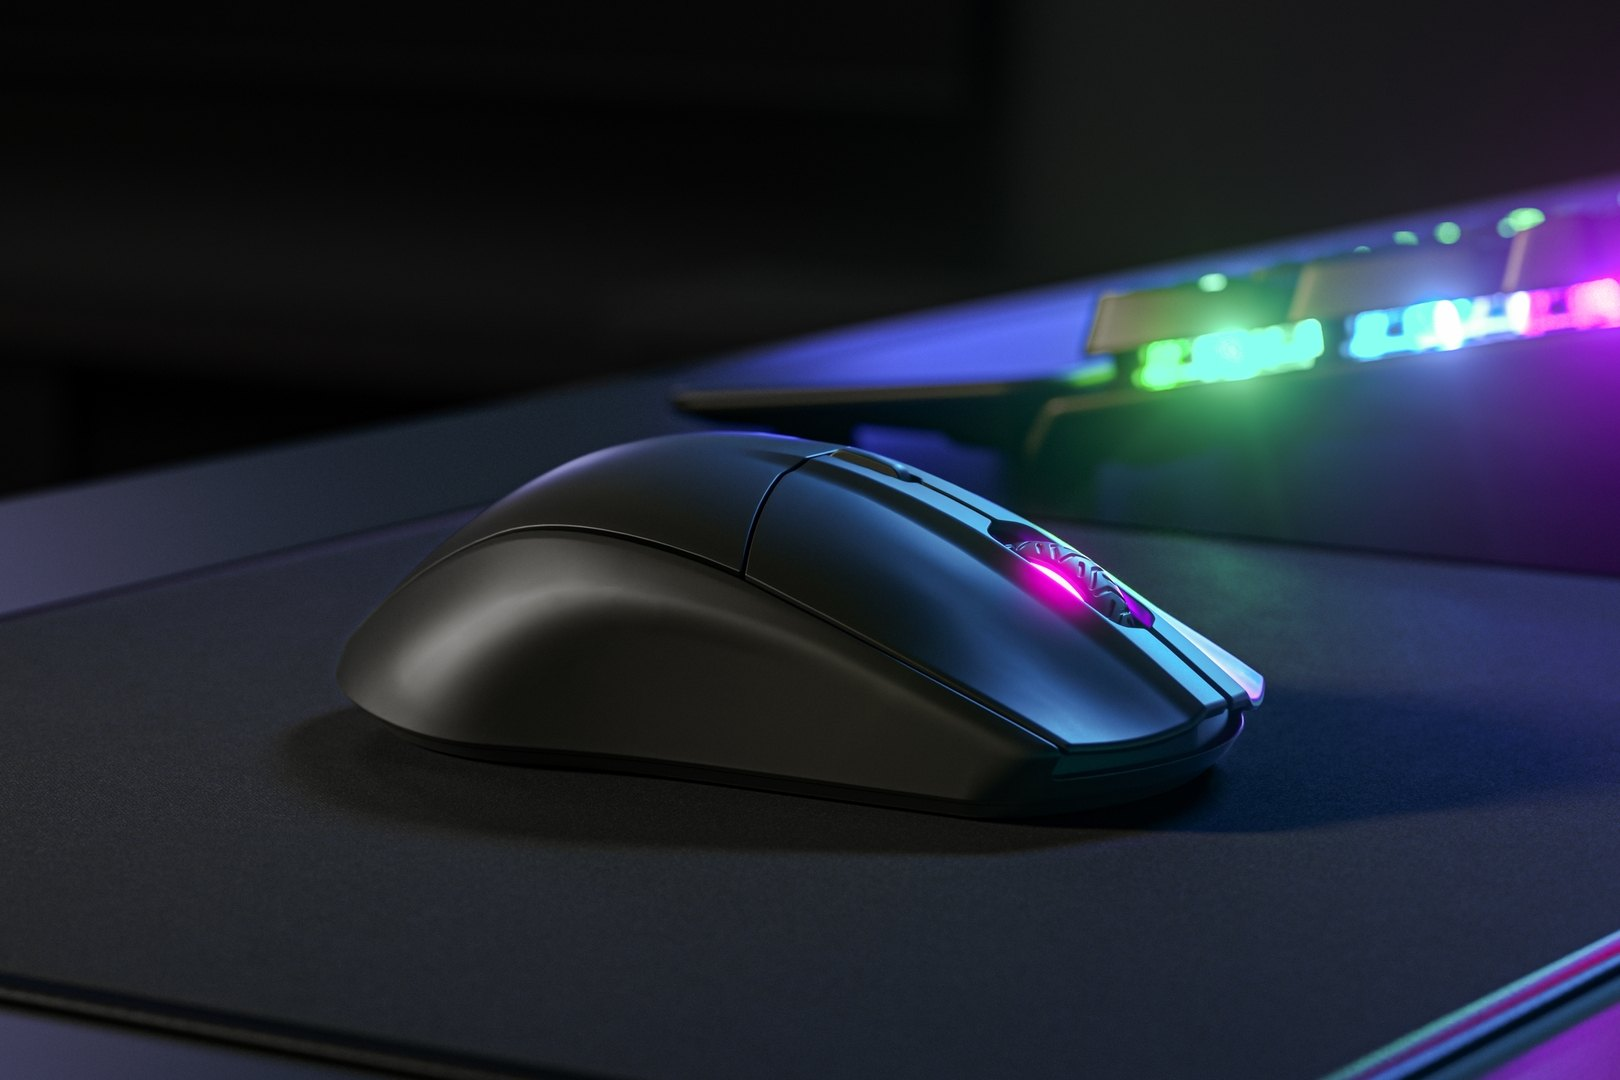 A close-up at how the Rival 3 mouse would look on a lucky gamer's desk.